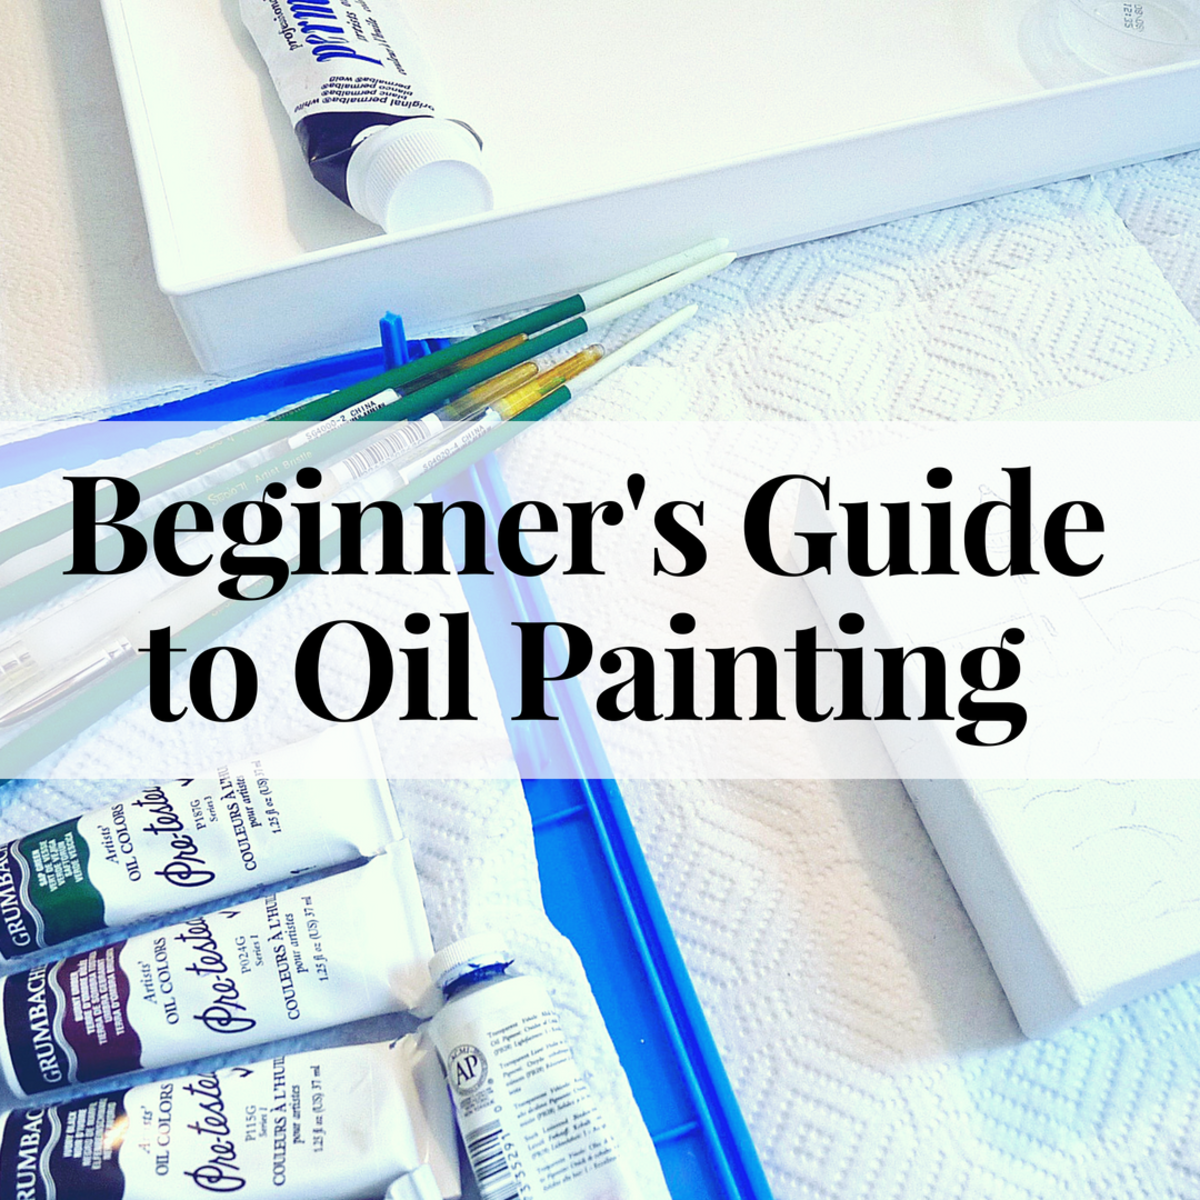 Beginner's Guide to Oil Painting: Part 2